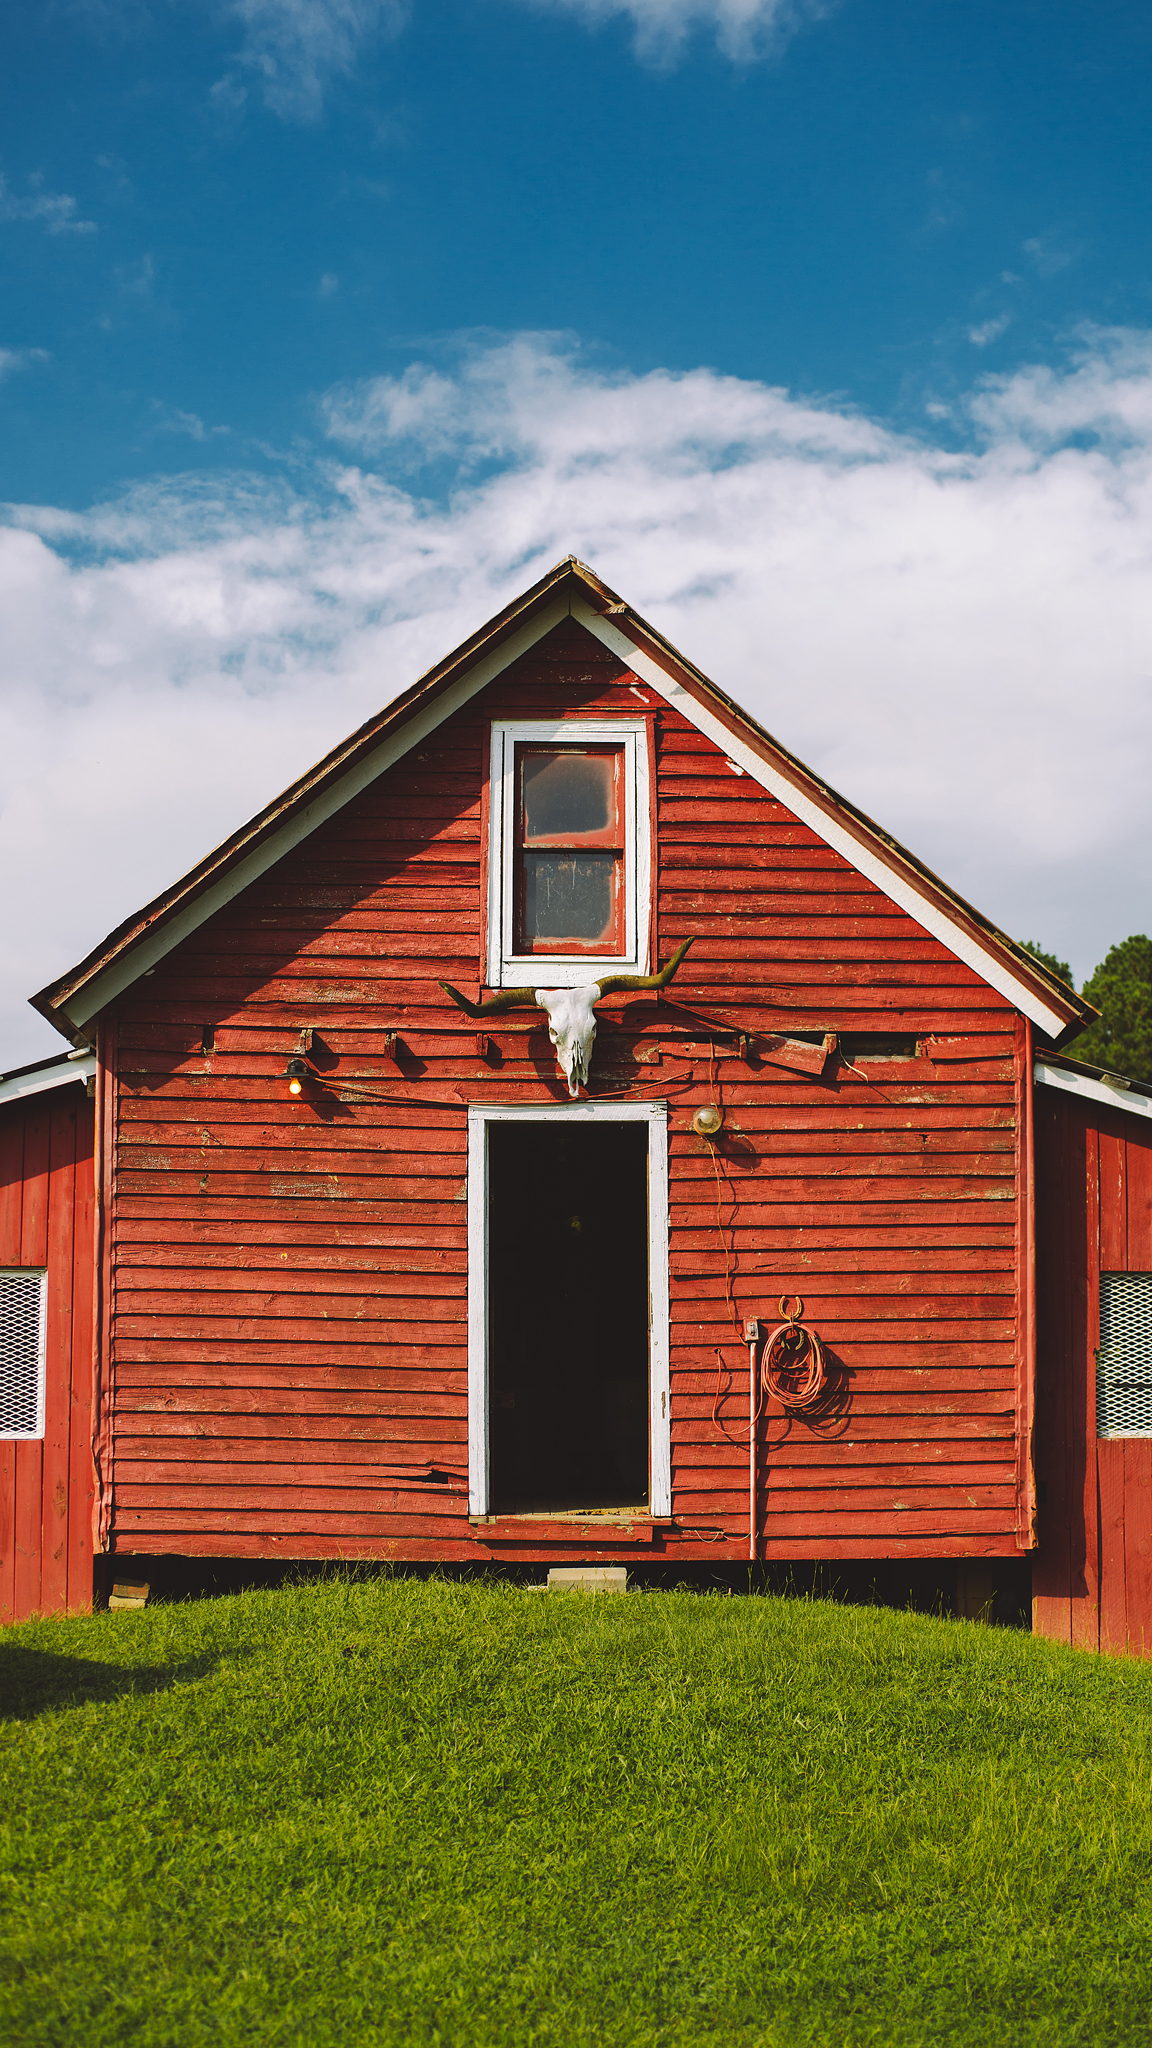 The beautiful red barn where all the magic happened... just like MTV cribs